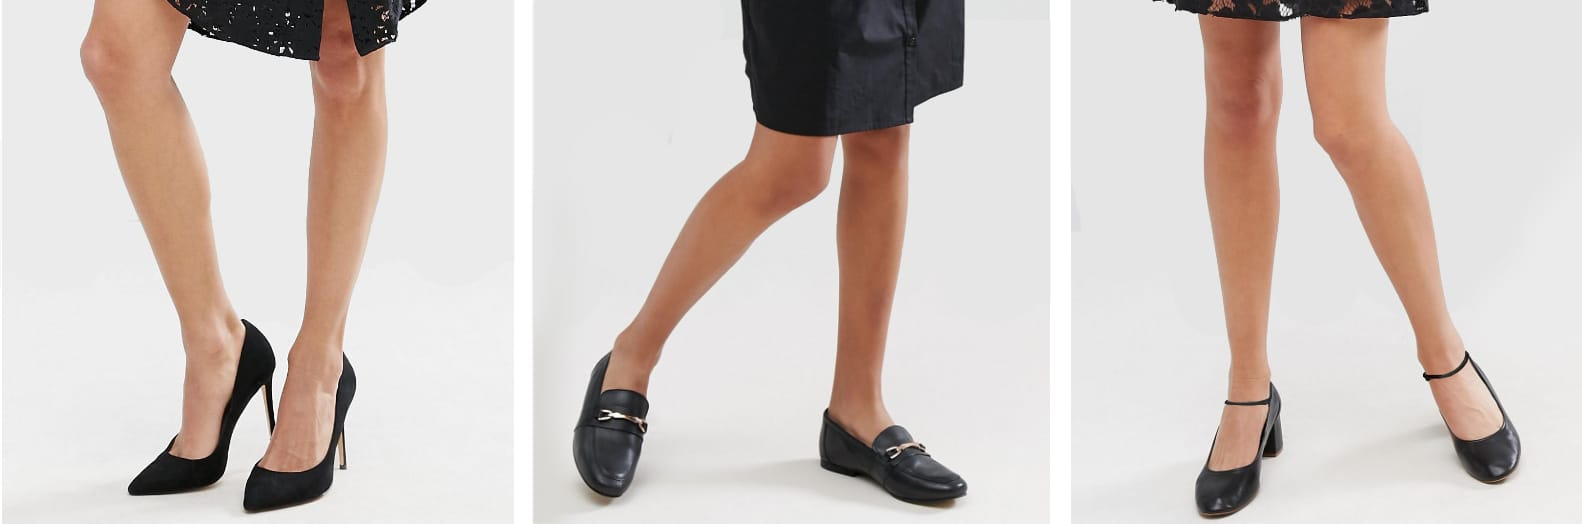 What Shoes Should I Wear With A Black Dress Home Blog